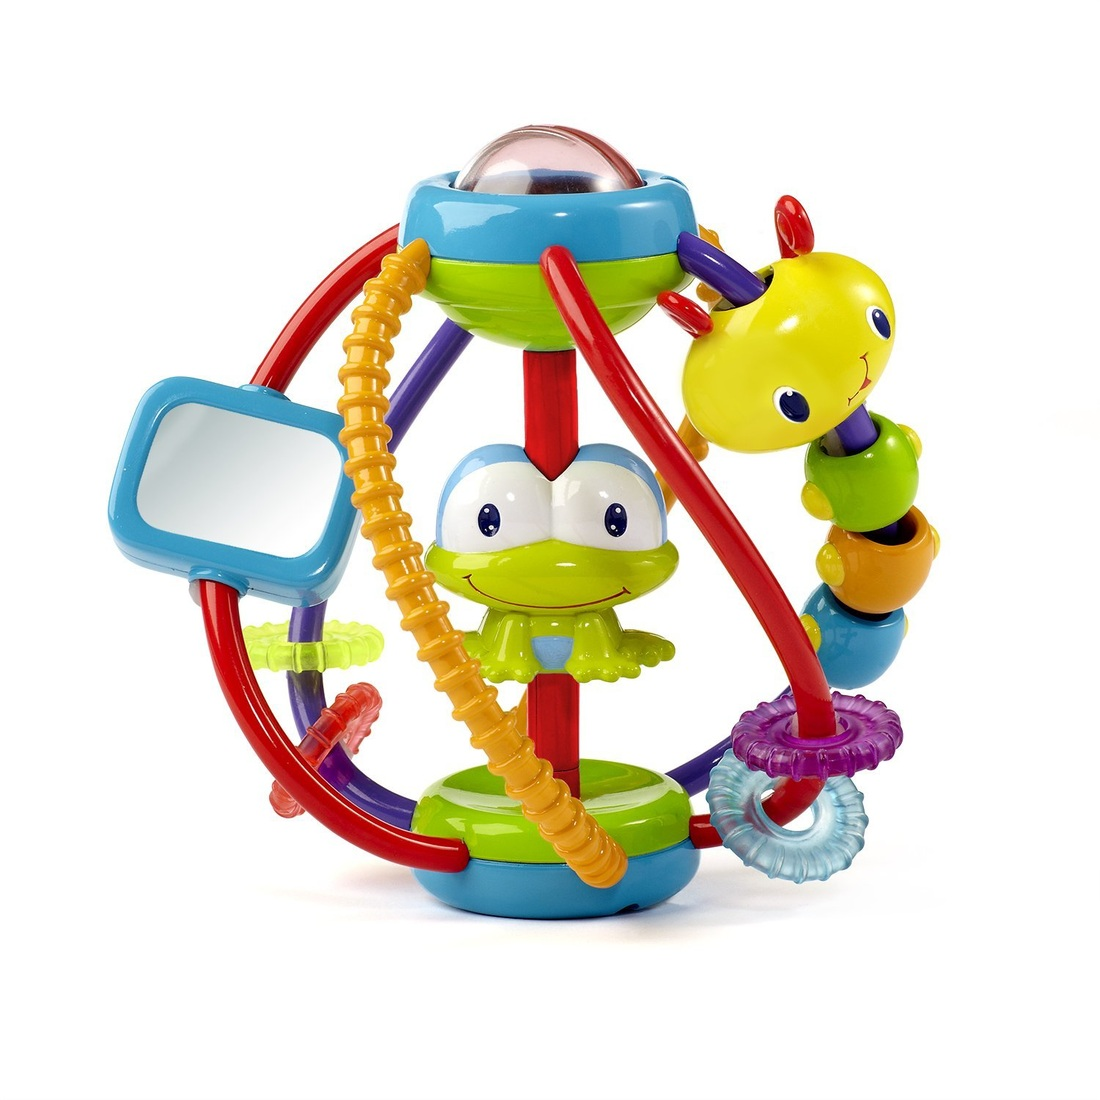 Top toys for 1 year old boys - TOP TOYS